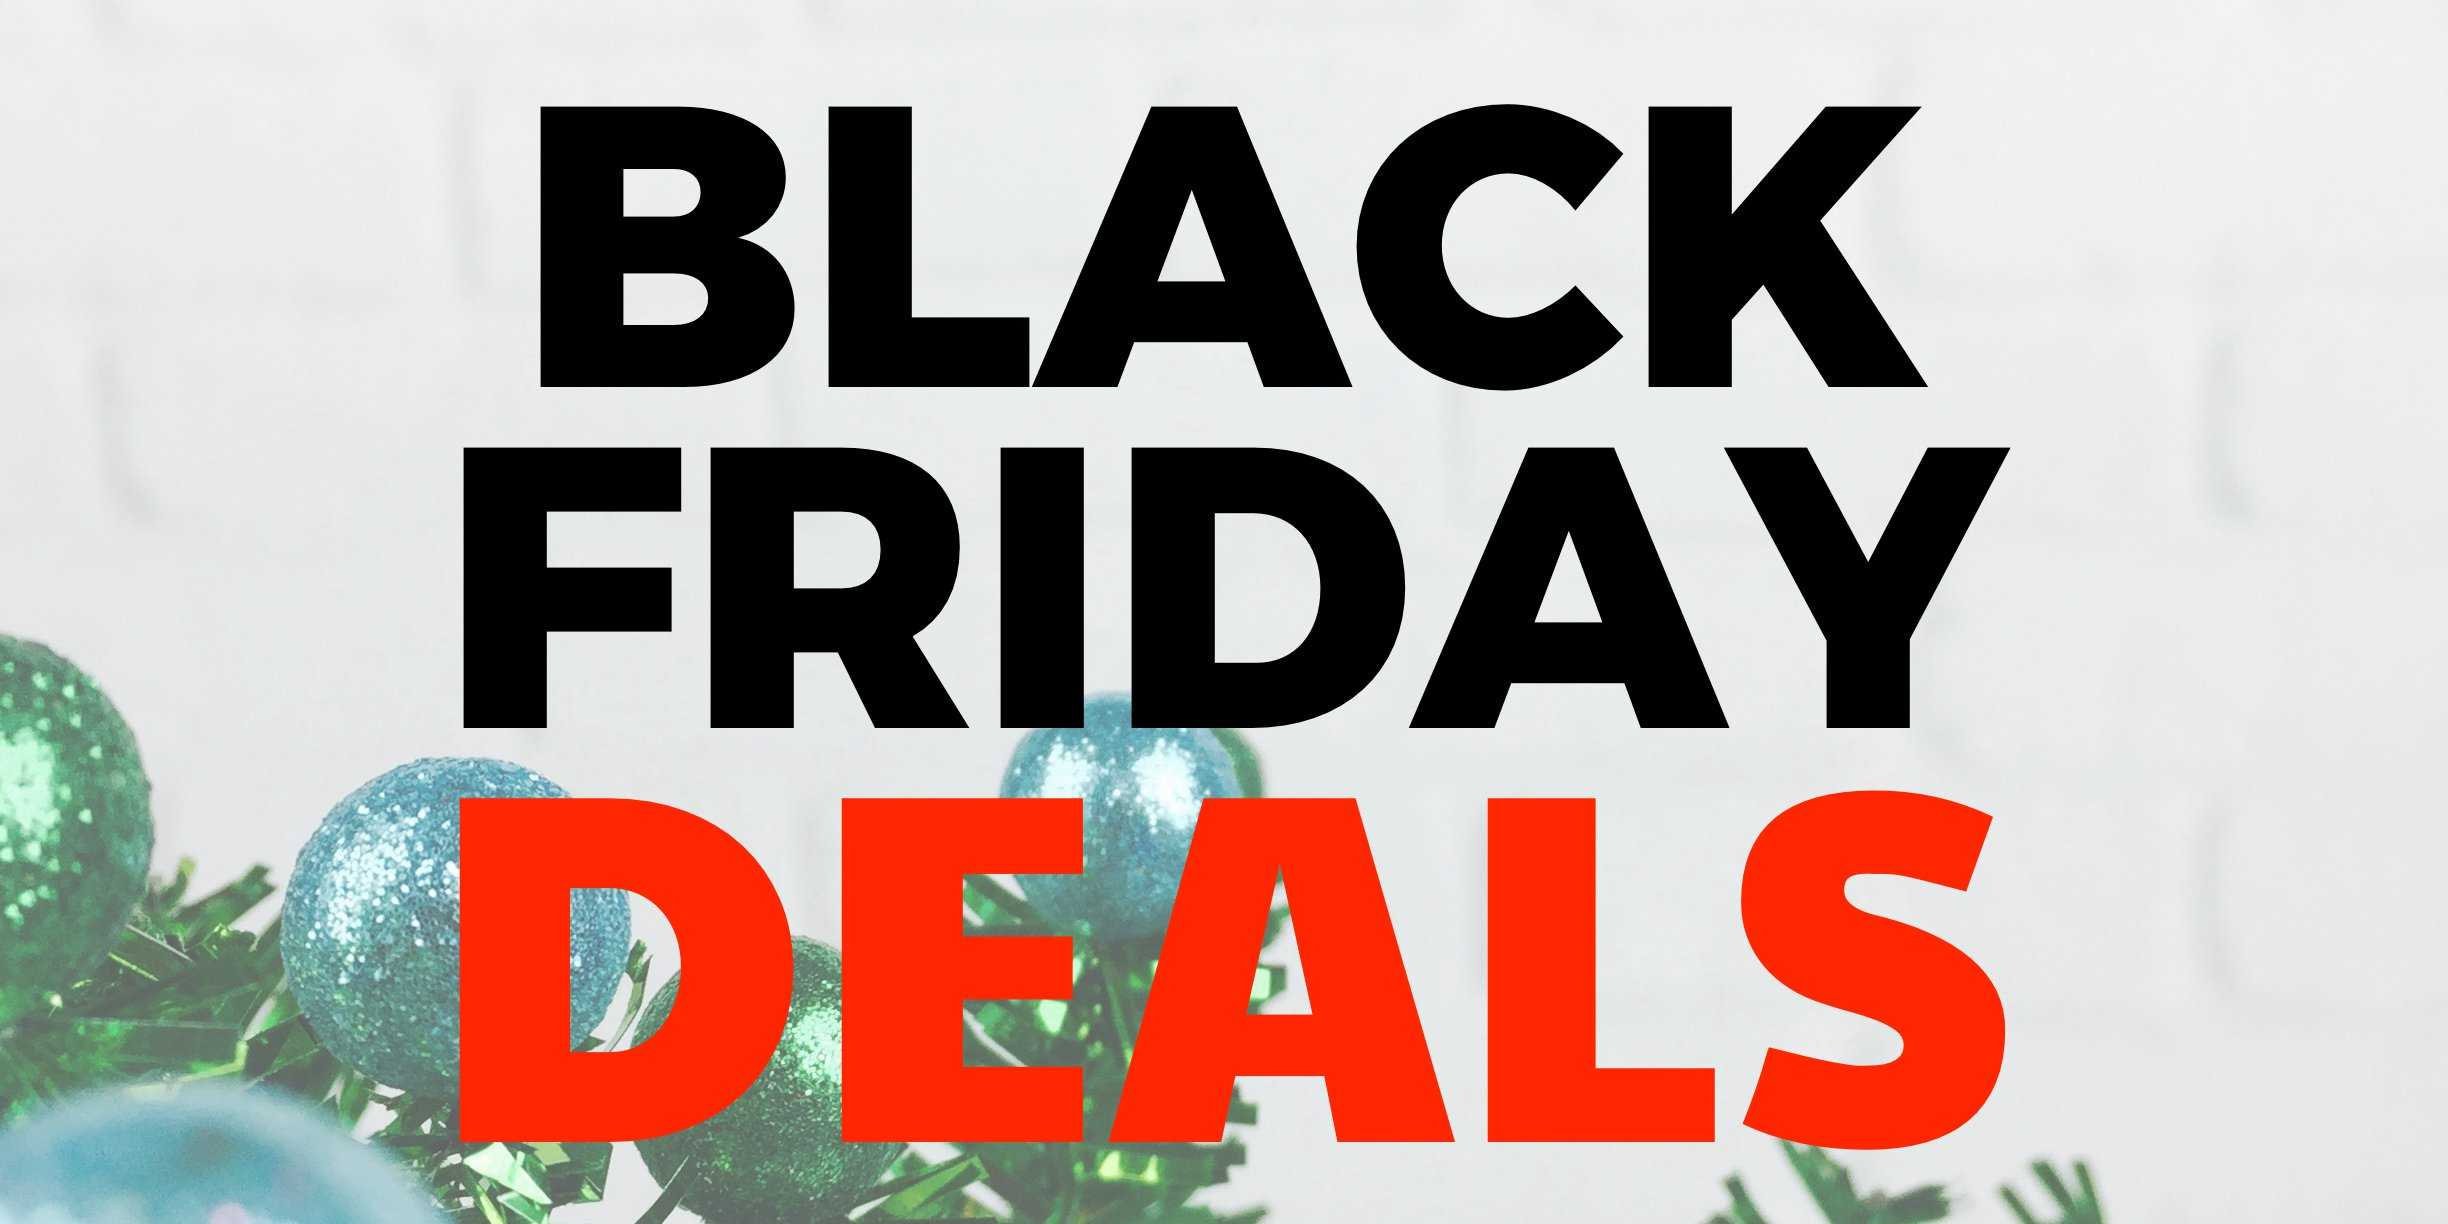 Black Frideay Black Friday Subscription Box Coupons 2018 Hello